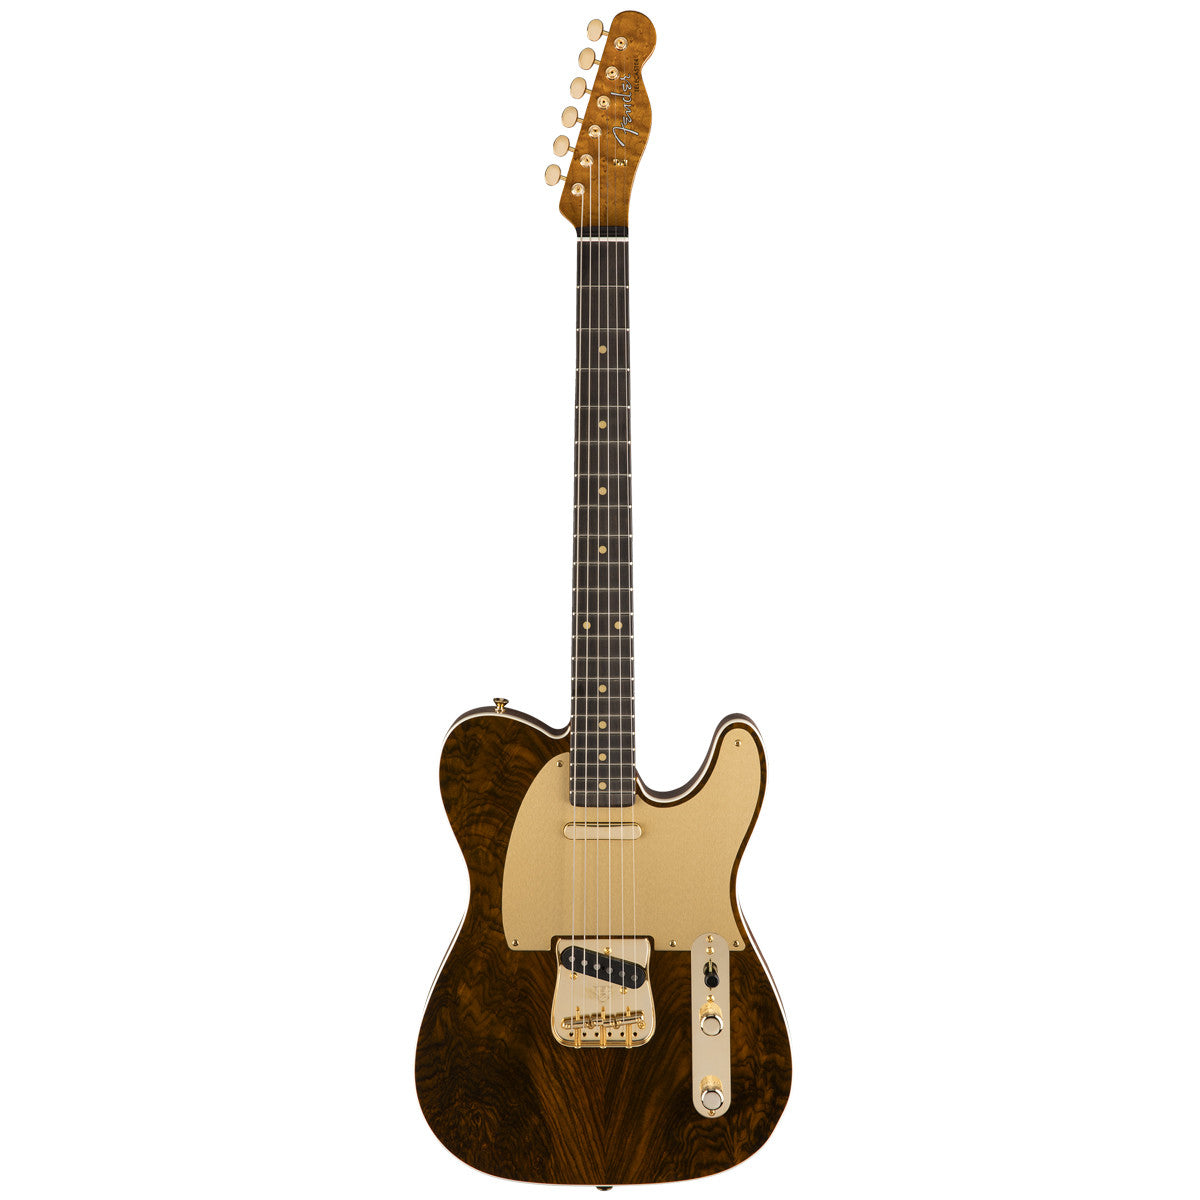 Fender Custom Shop Artisan Telecaster Roasted Fiji Mahogany Figured Rosewood Top | Lucky Fret Music Co.